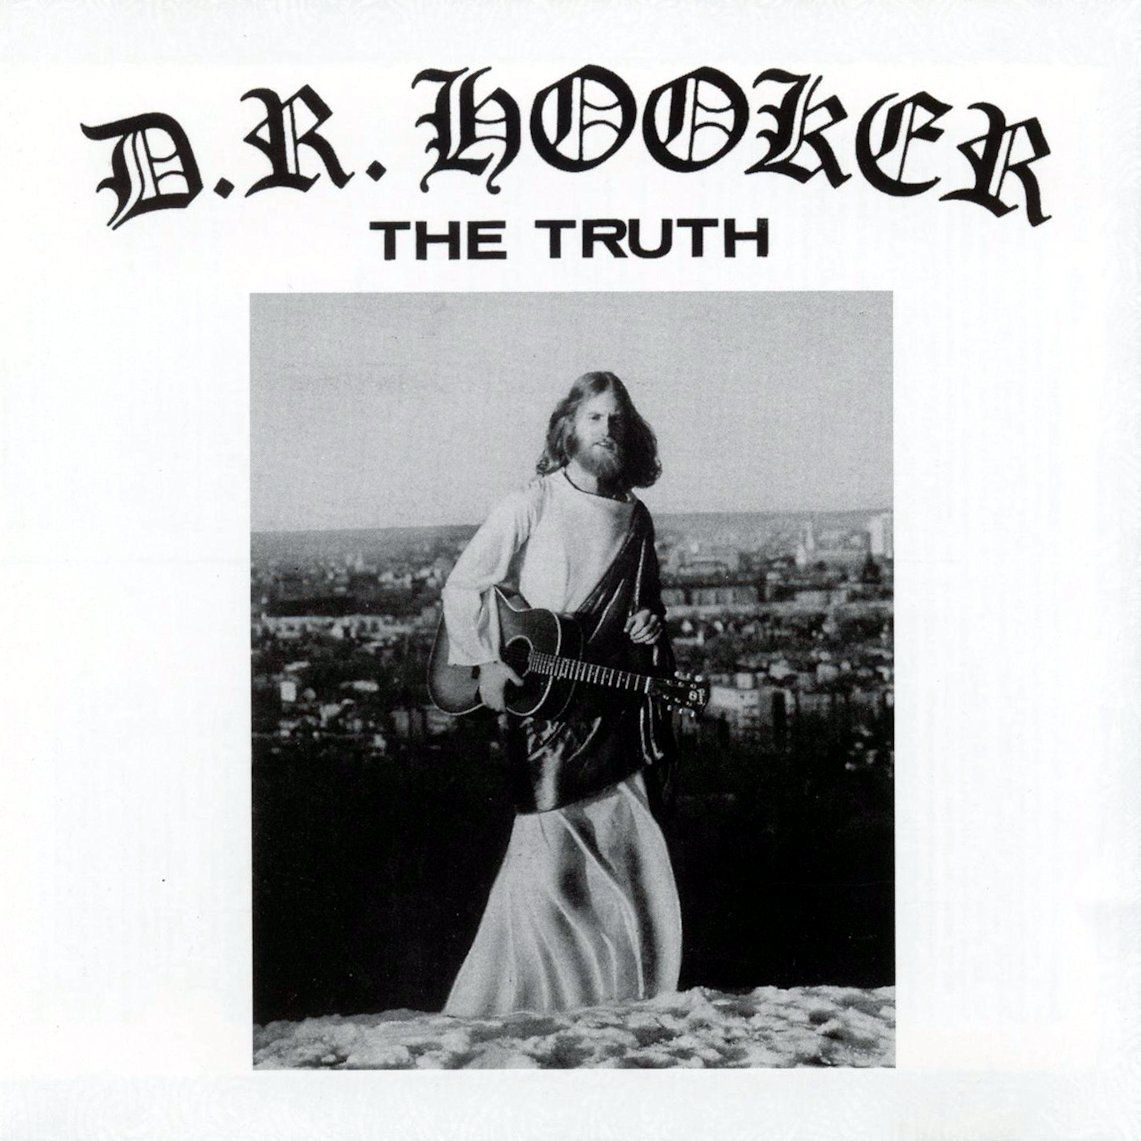 D.R. Hooker - The Truth (1972)